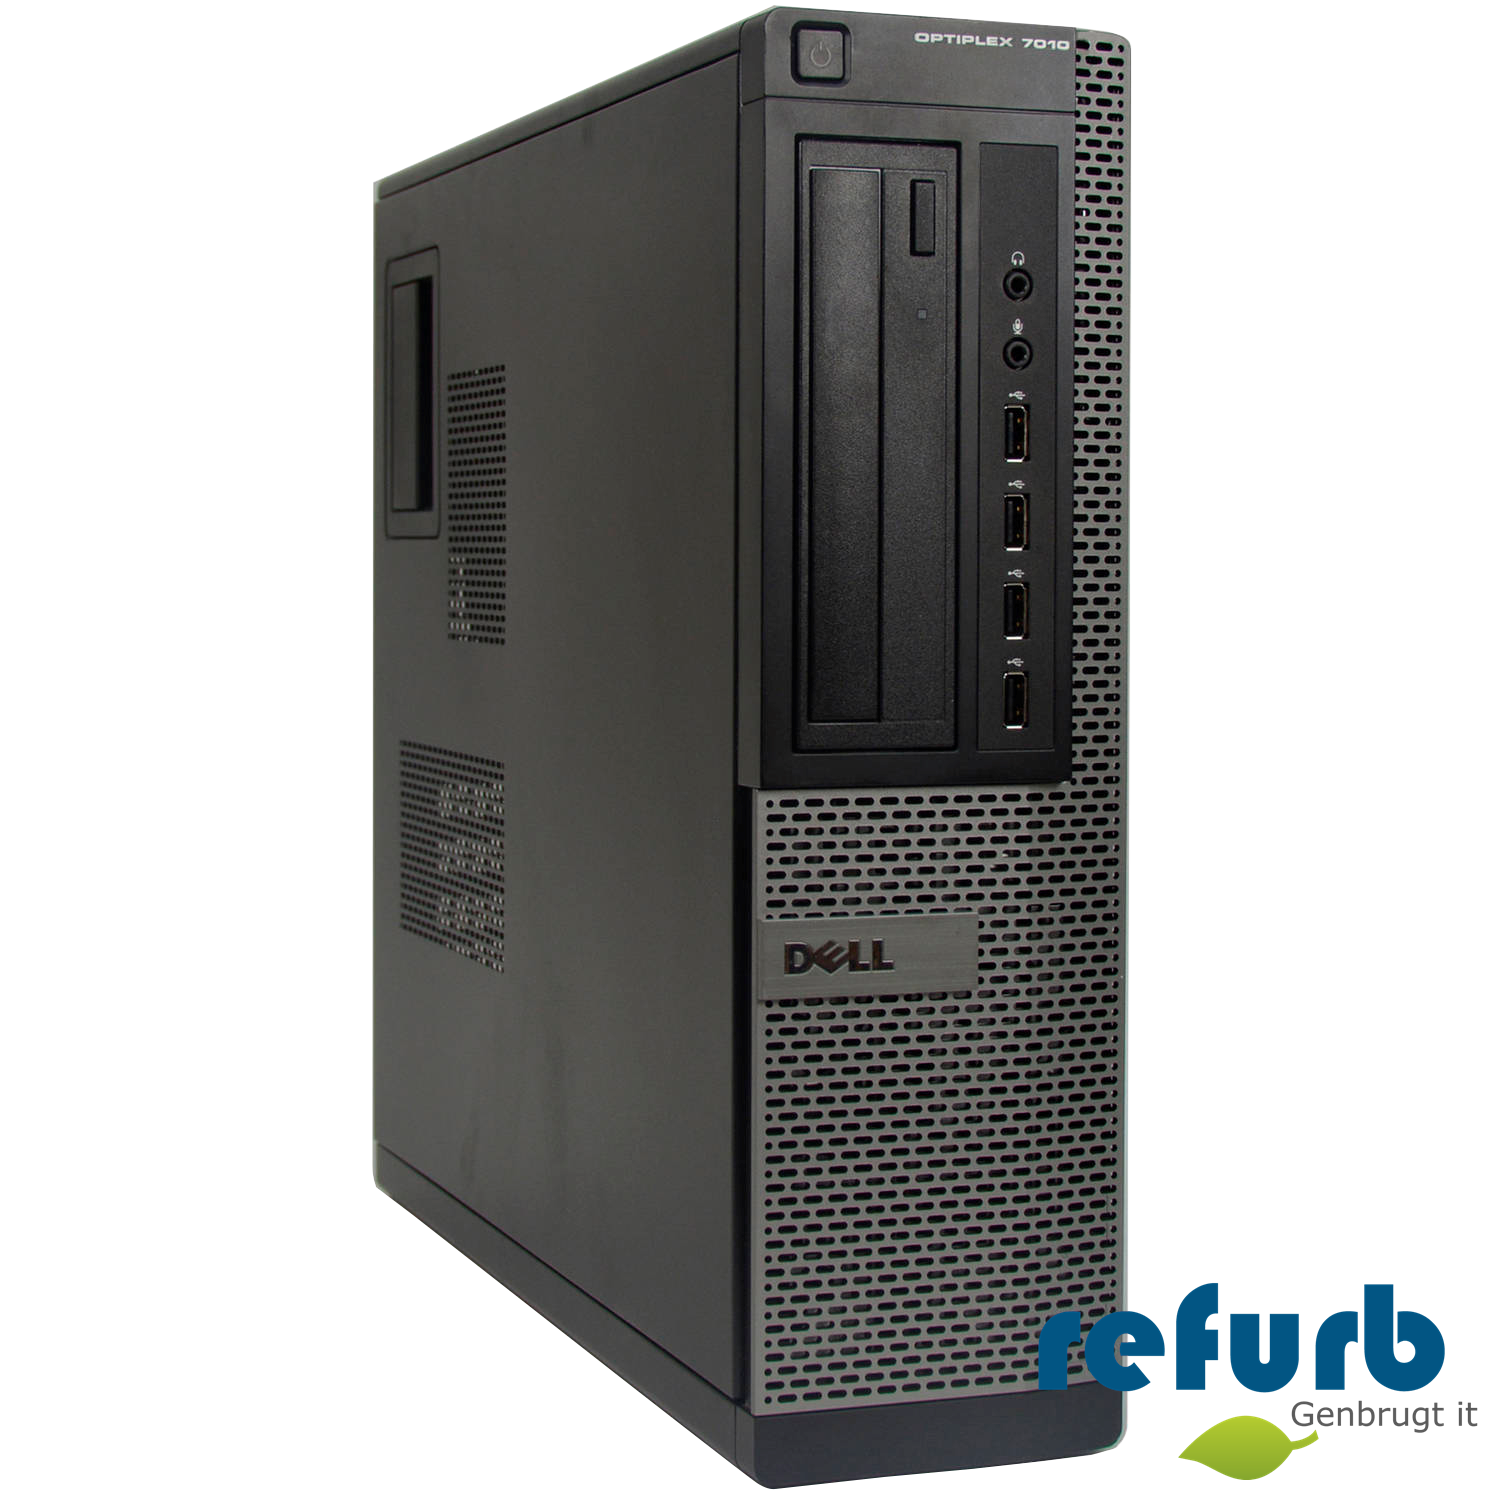 Dell – Dell optiplex 7010 dt på refurb